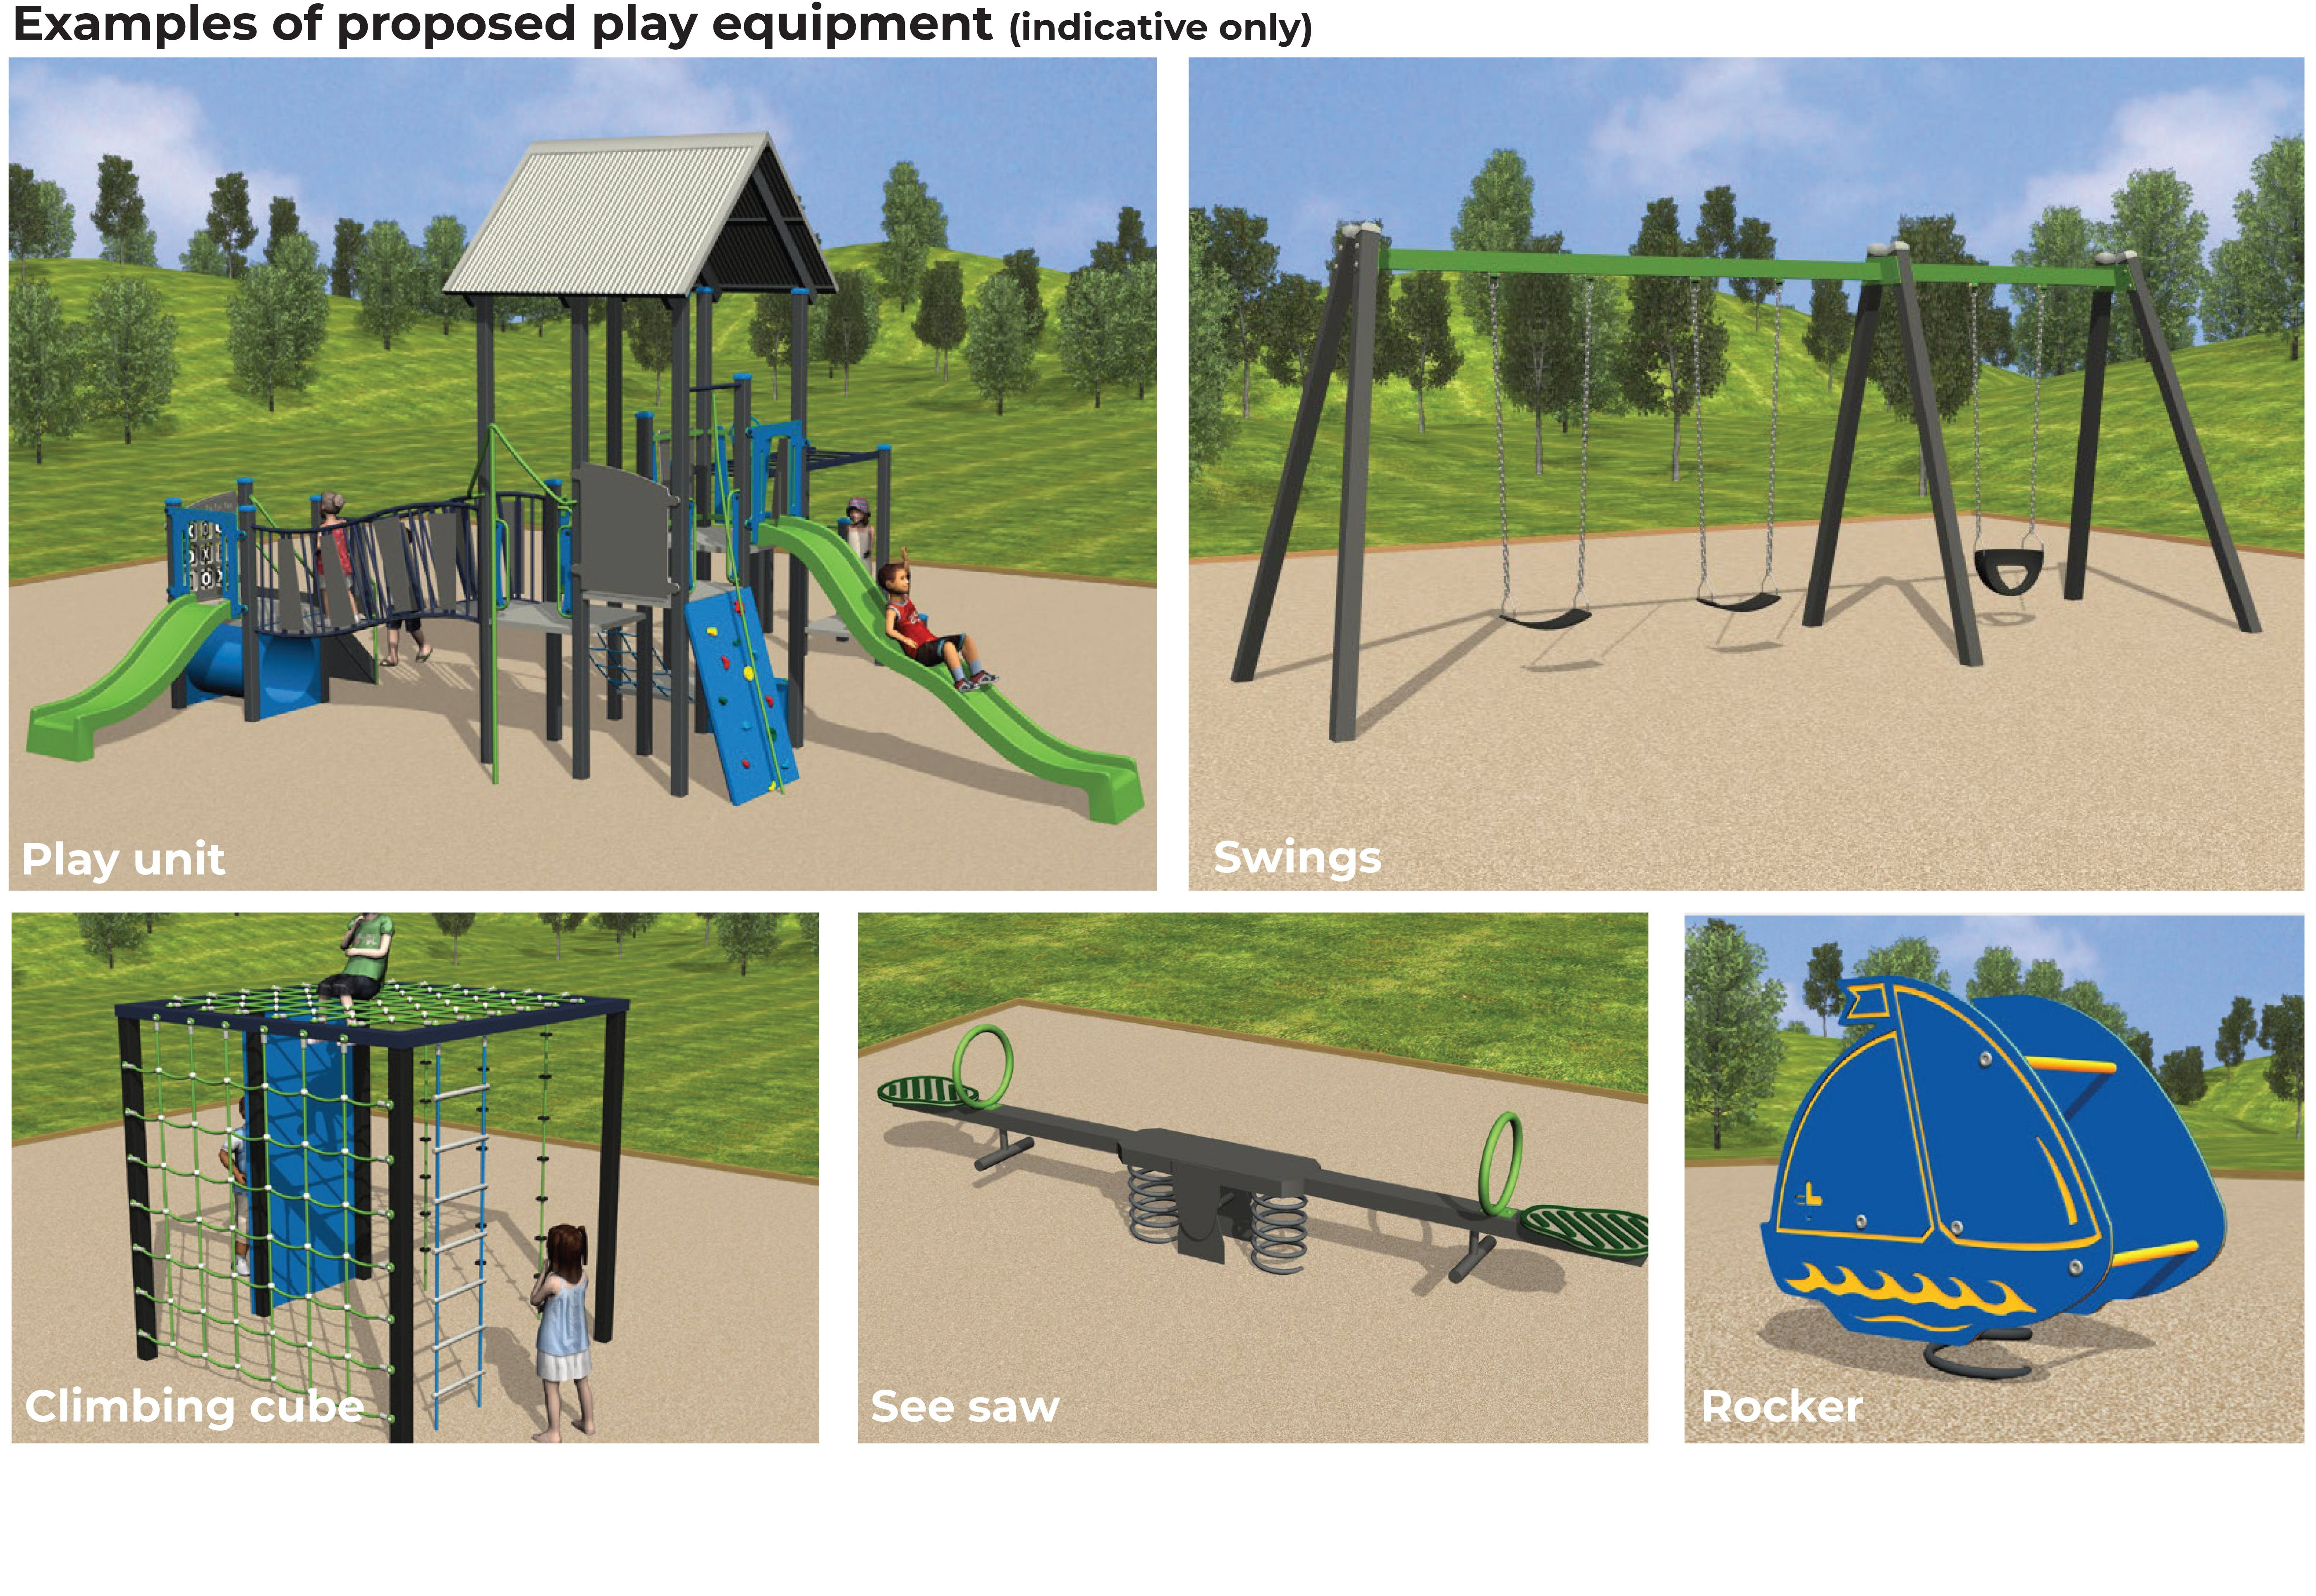 Hamilton Hume Reserve - Proposed Play Equipment